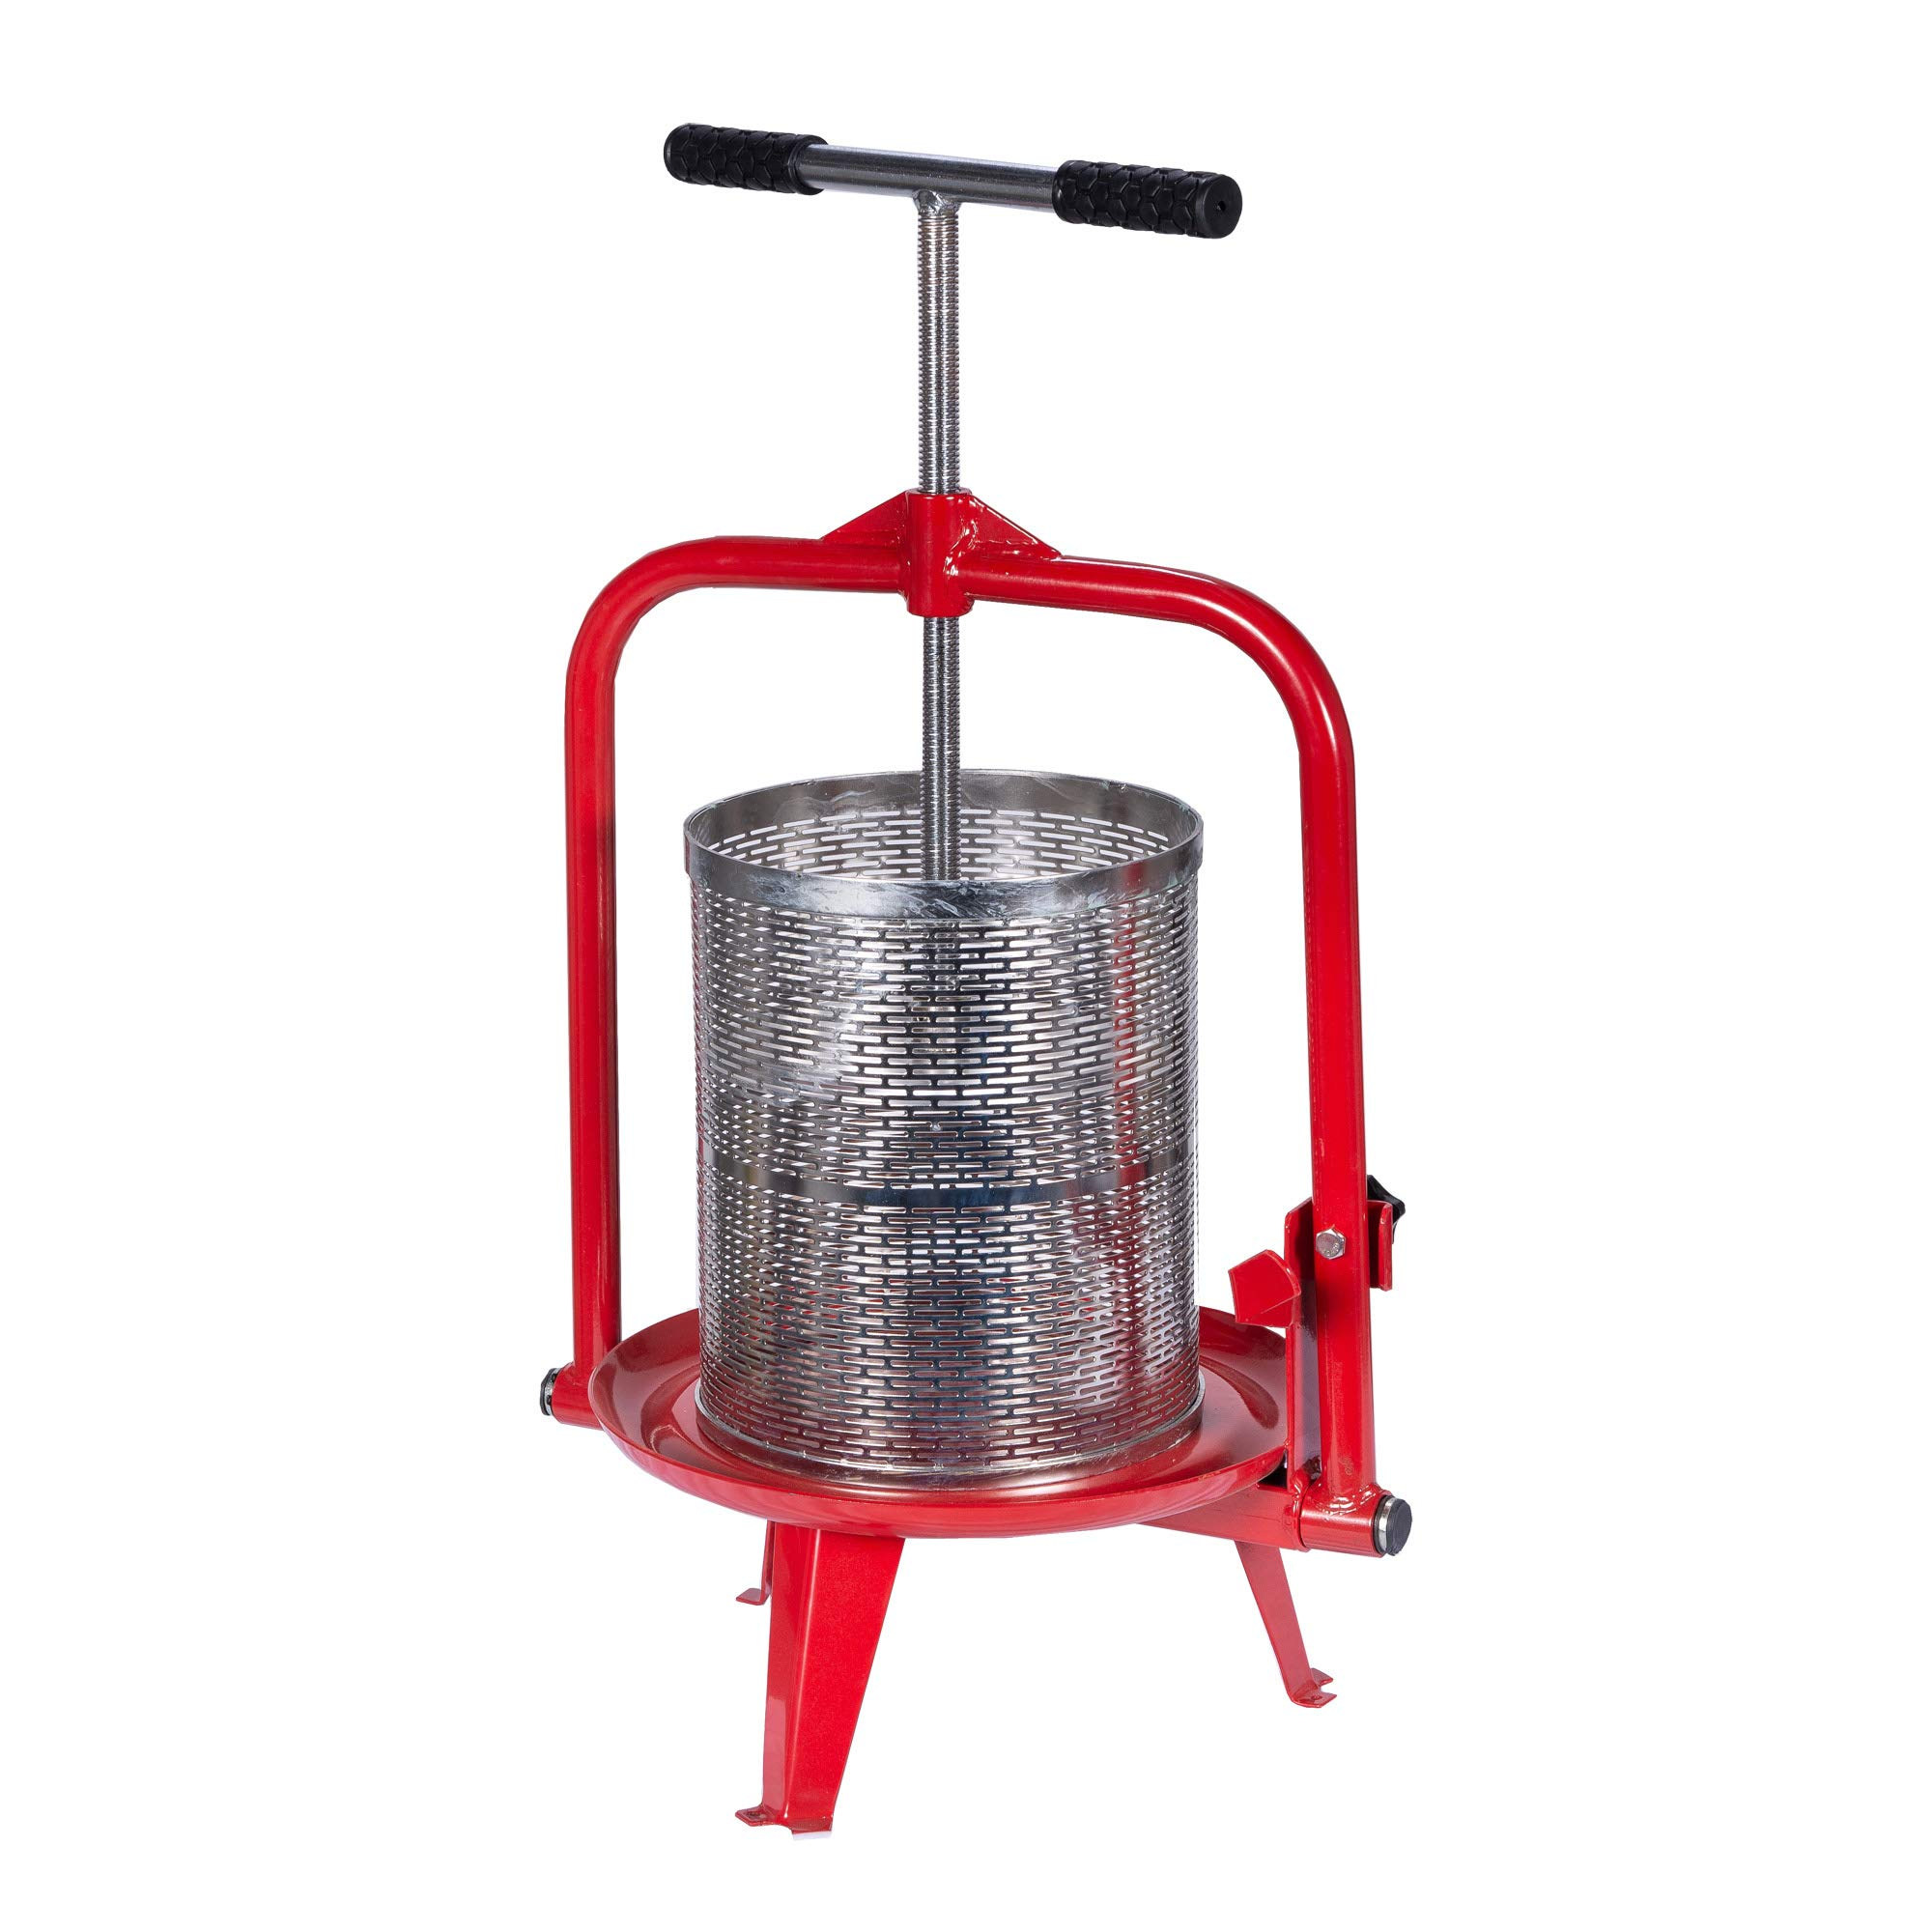 14 Liter (3.75 Gallon) Fruit Press - New Larger Stainless Pressing Plate - Cider, Wine, Grape, Apple Press, For Apple Cider, Wine and Juice Making, Stainless Steel, Choose Size by Montimax by Montimax By Green Max Products (Image #7)